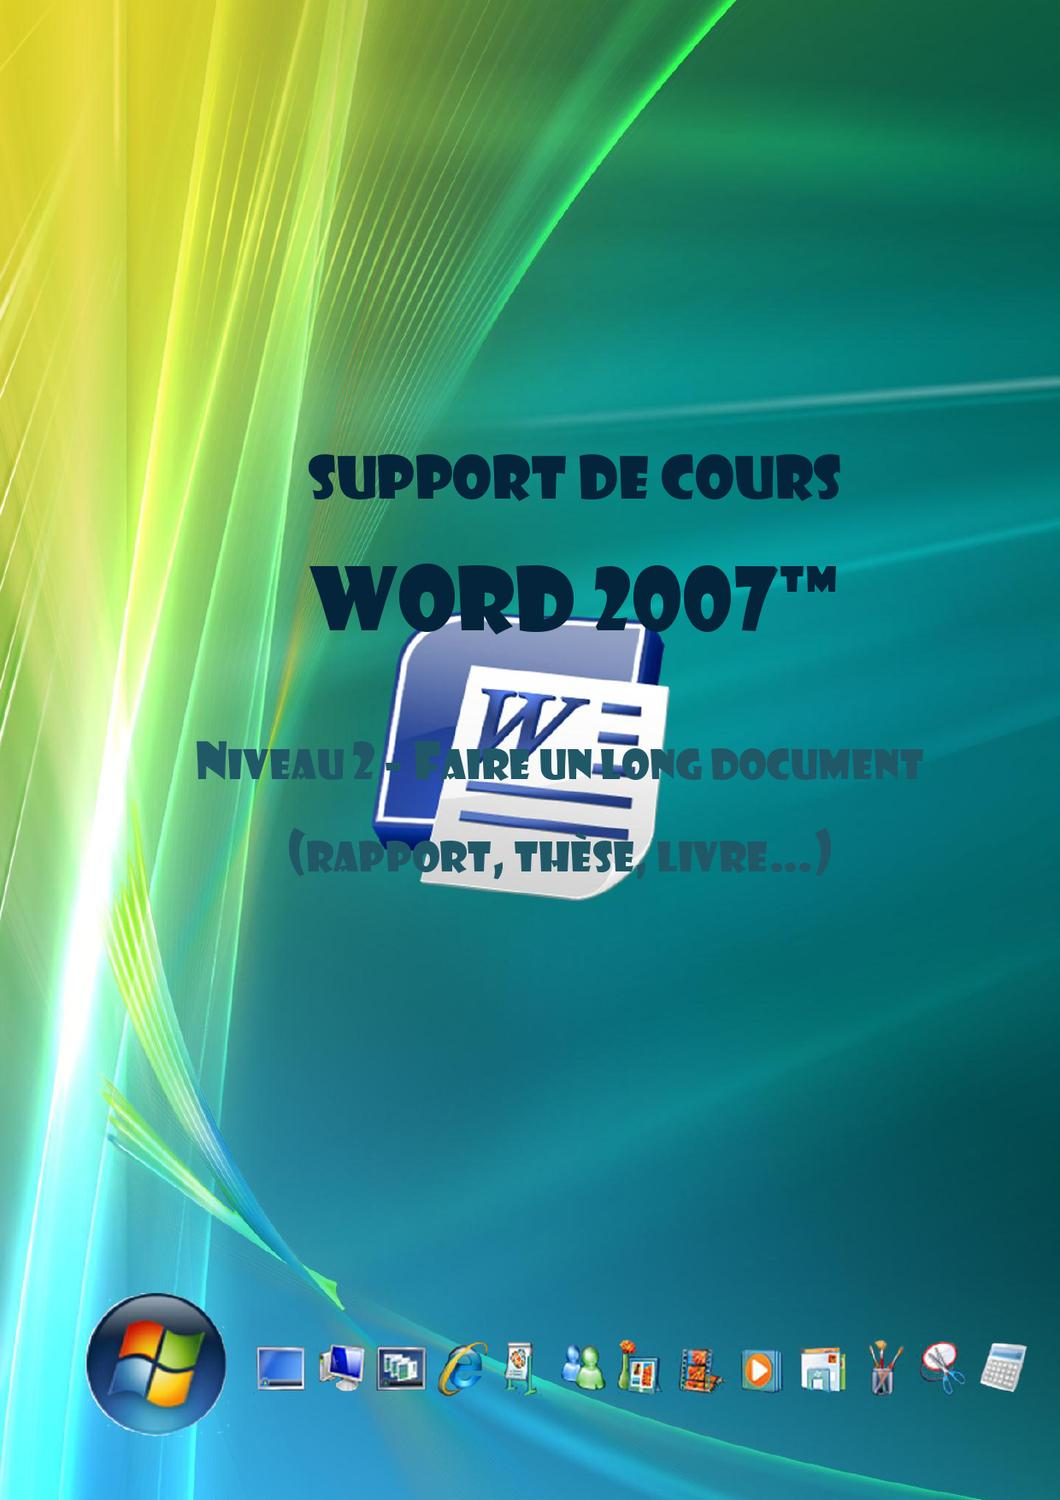 cours word 2007 2 u00e8me niveau  les longs documents  le mod u00e8le by joel green